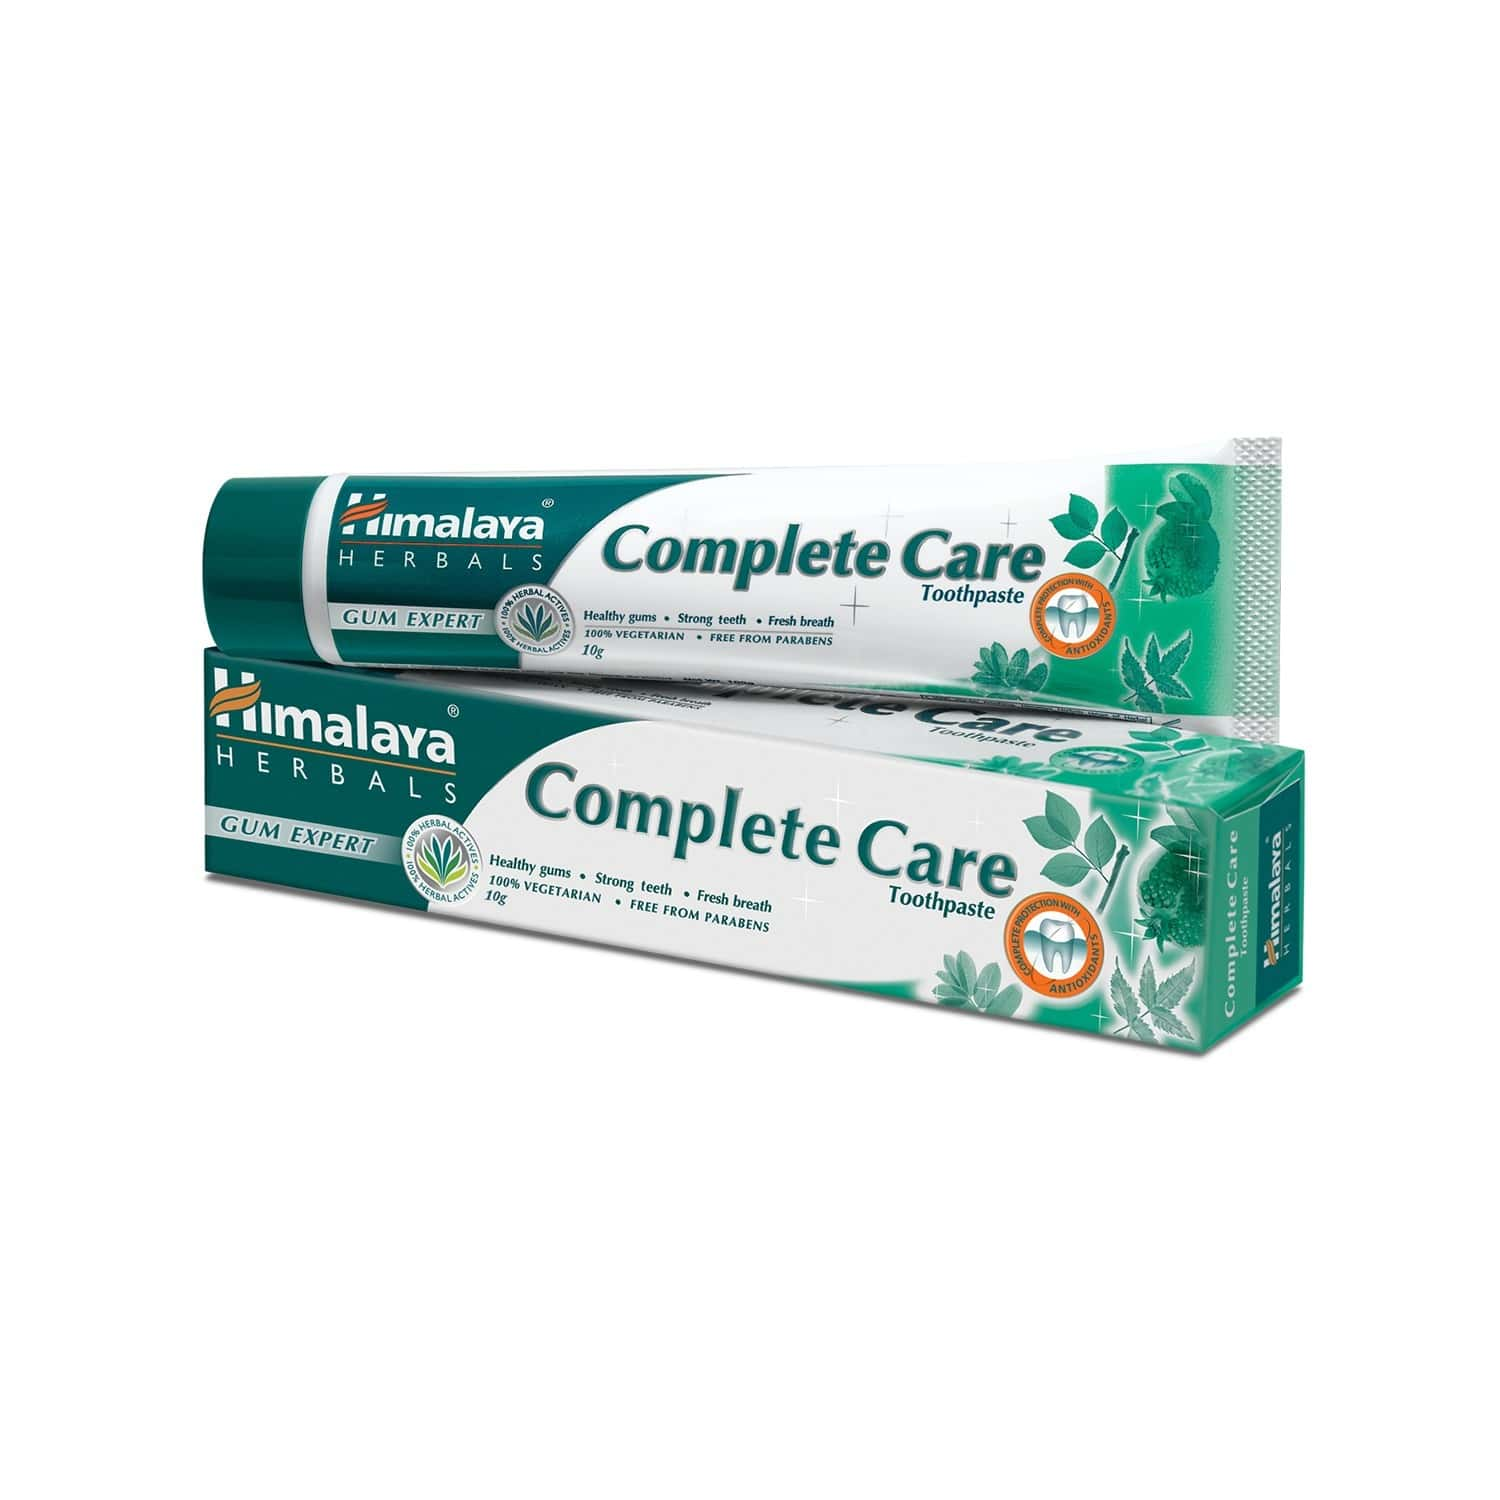 Himalaya Complete Care Toothpaste 40gm